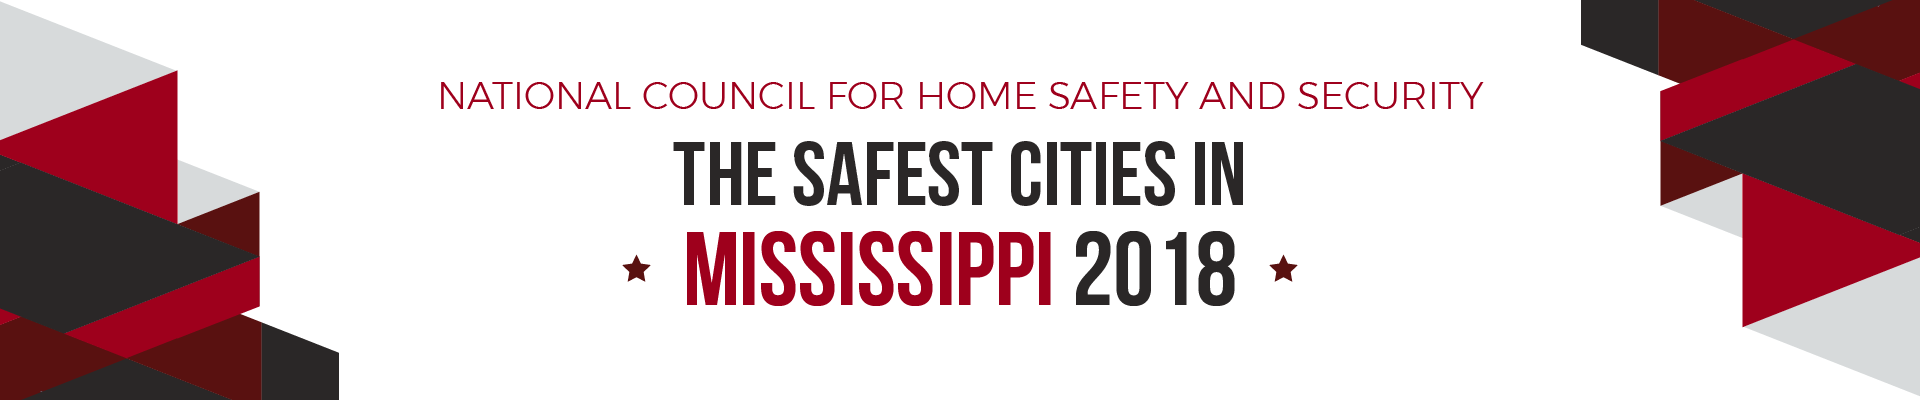 mississippi safe cities 2018